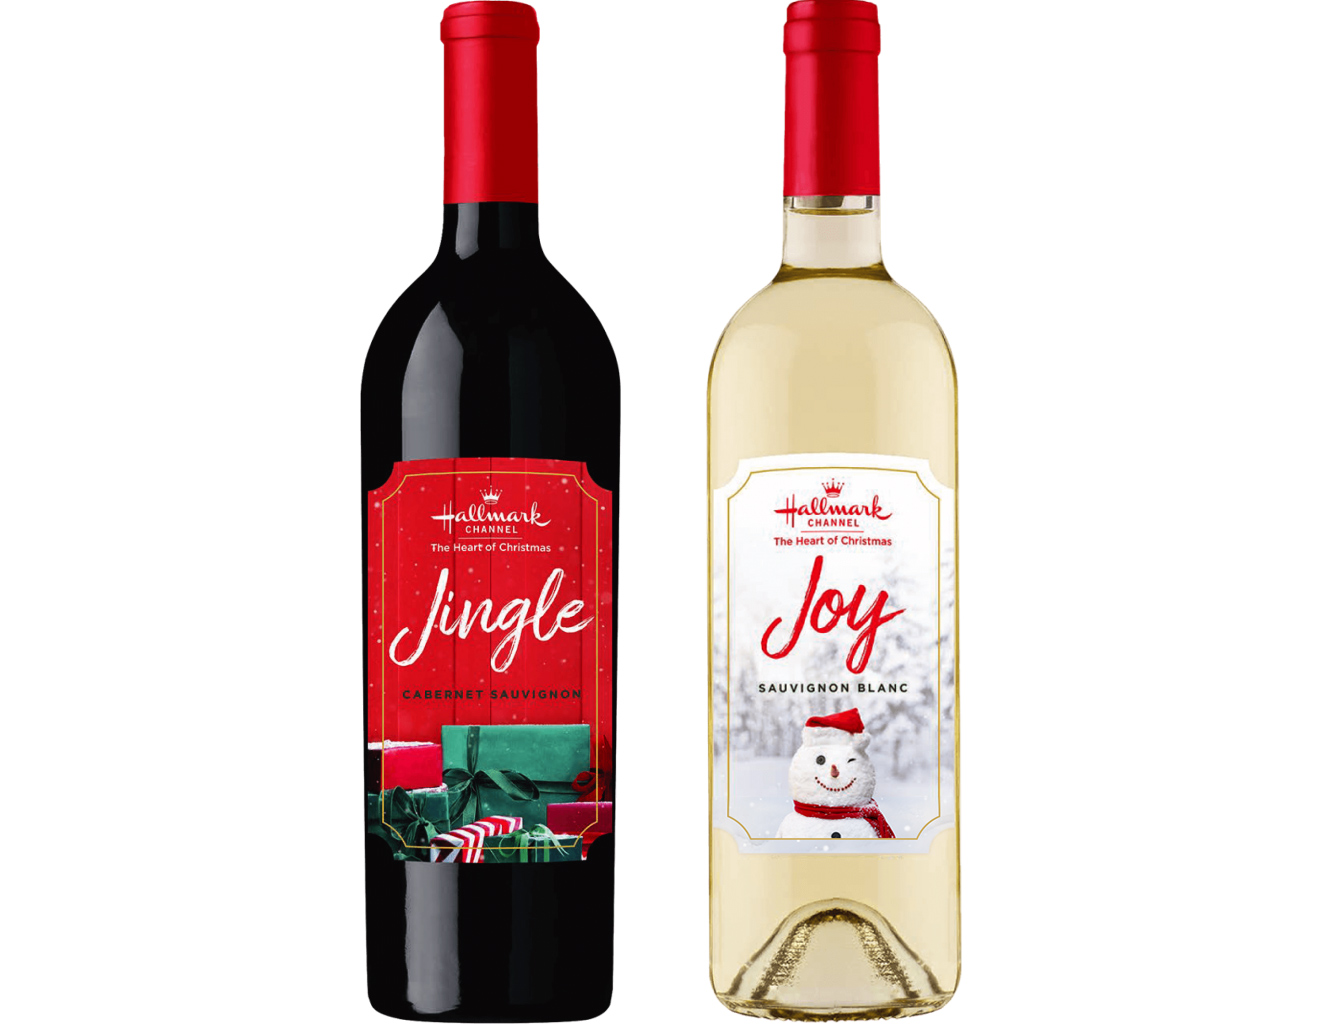 Hallmark Christmas Jingle Joy Wine